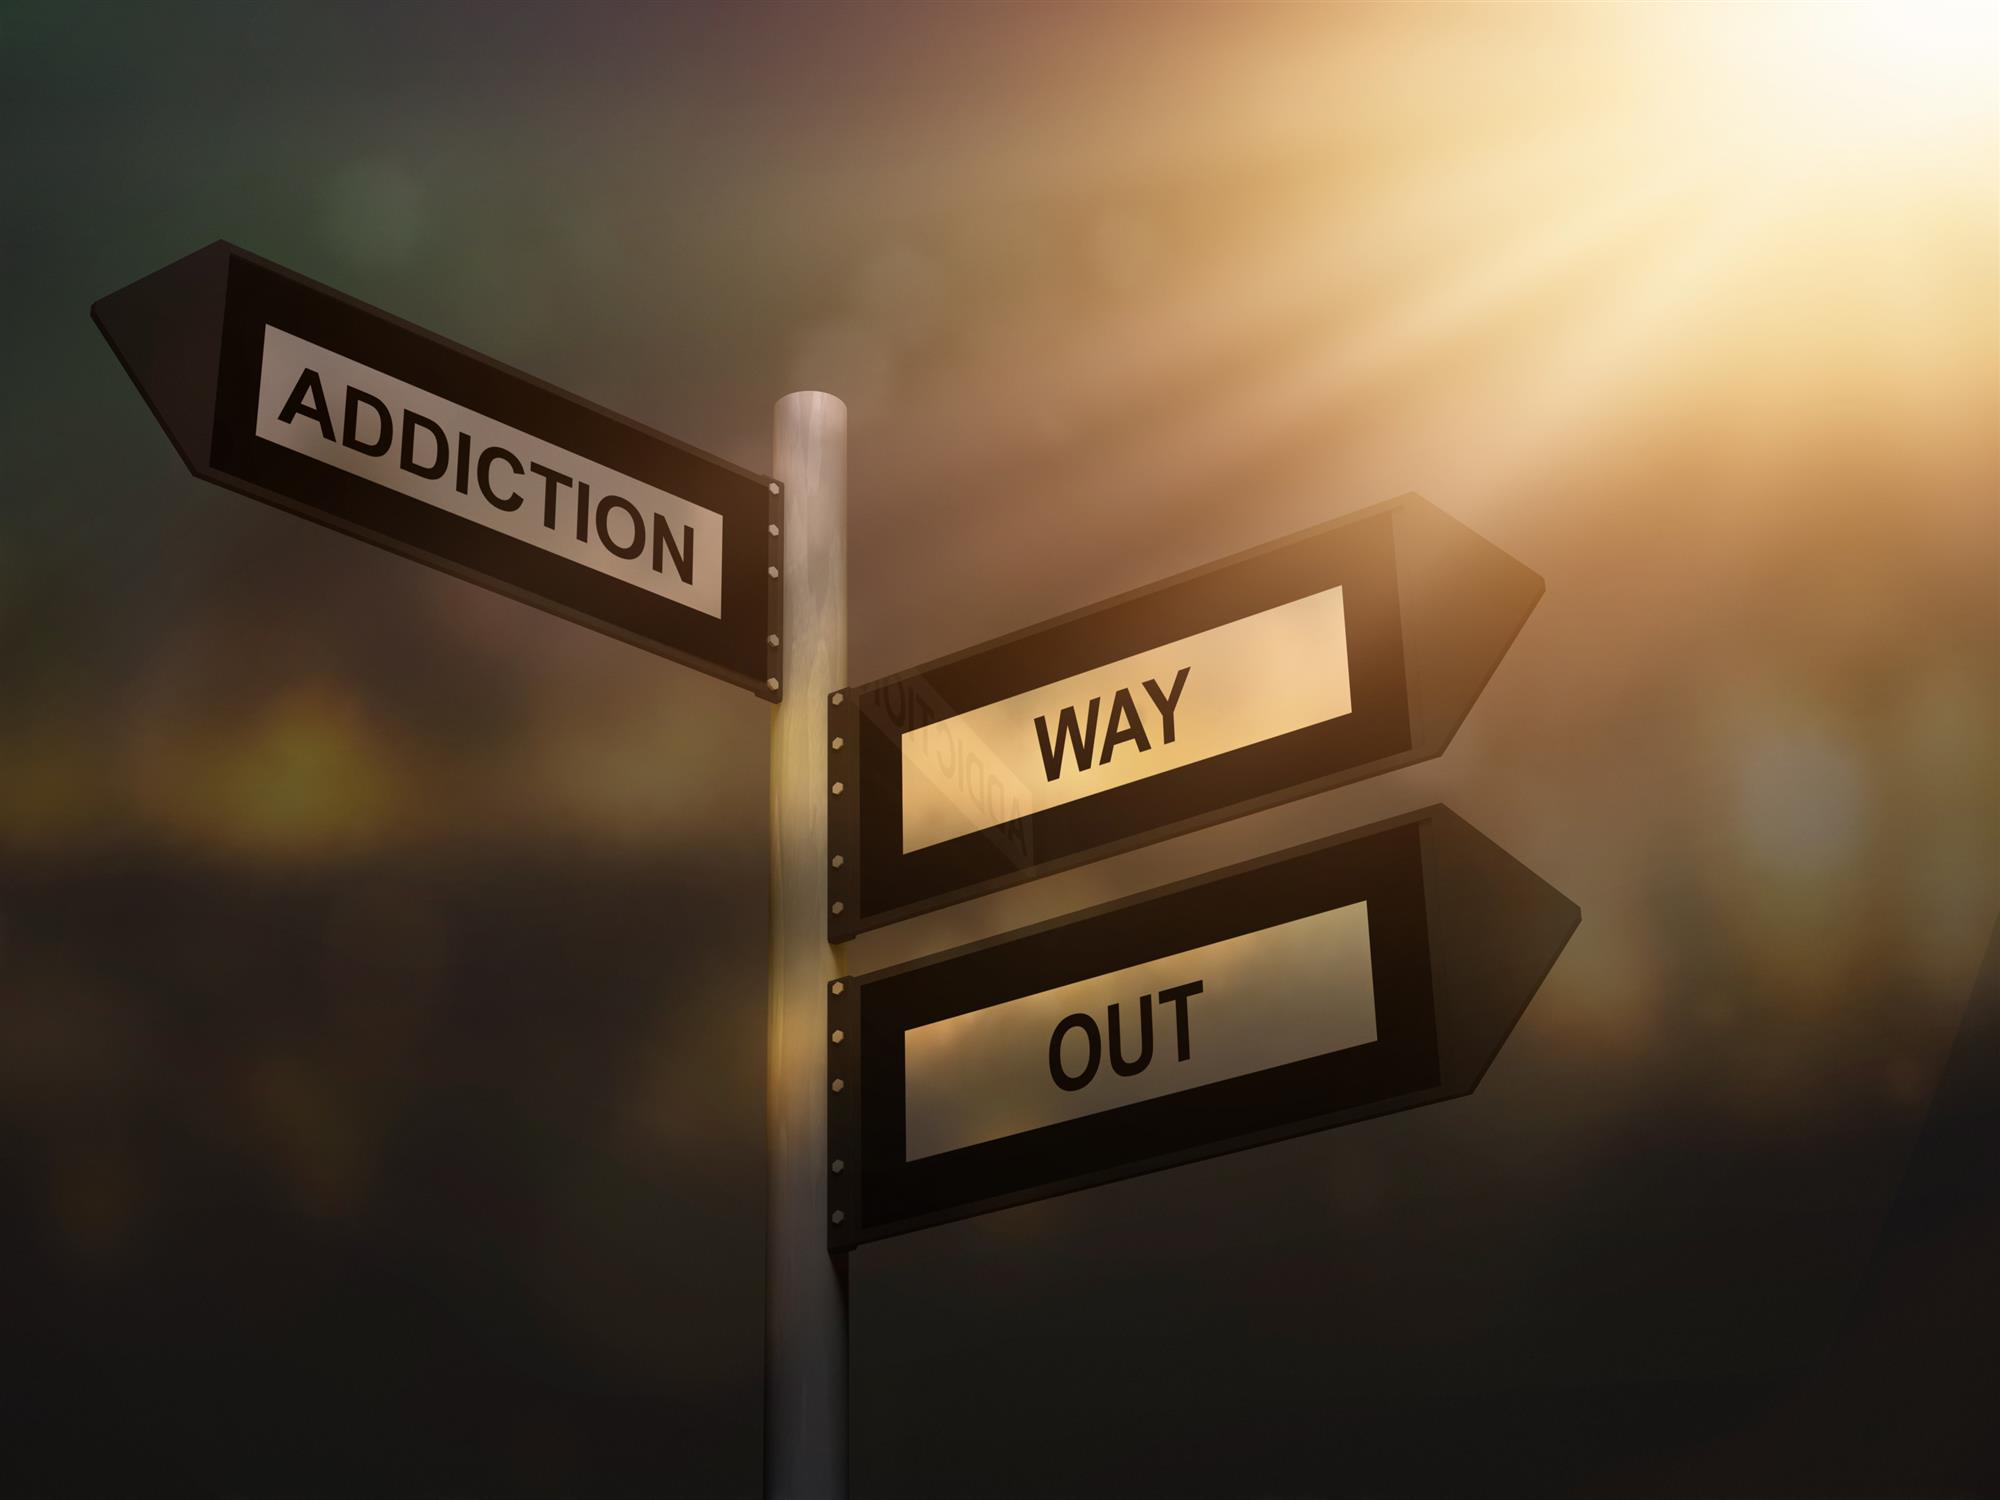 addiction way out problem sign